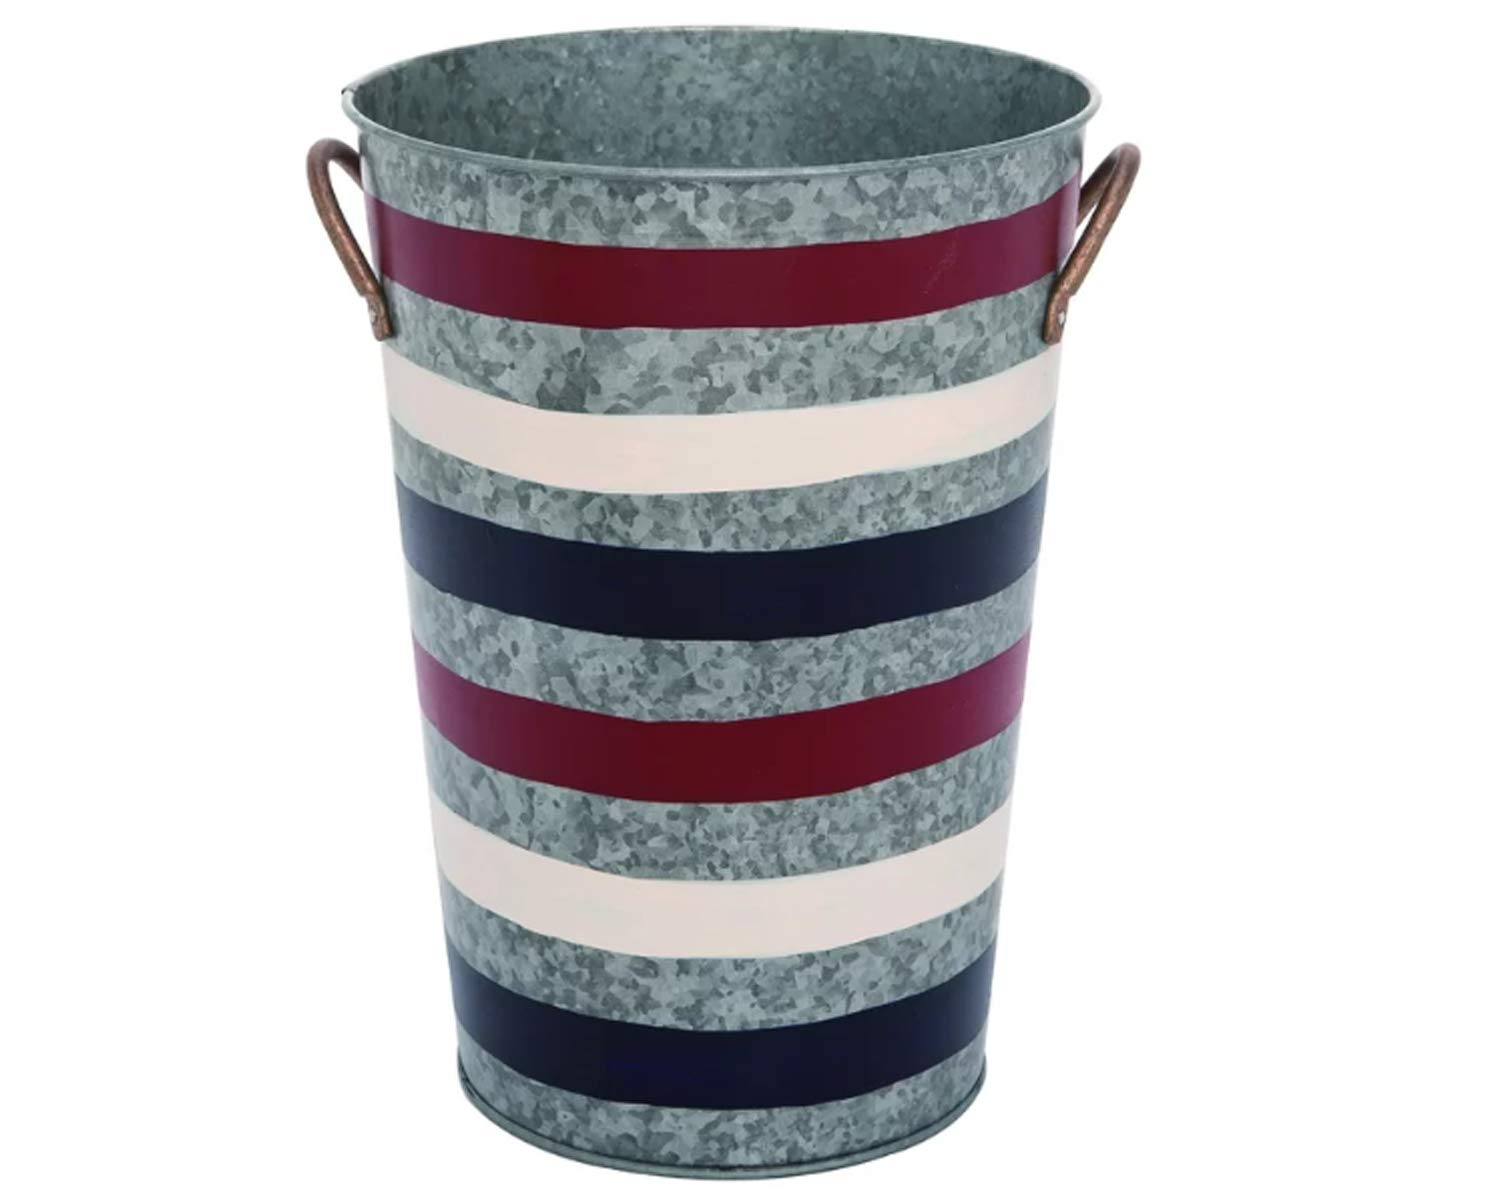 Wisechoice Patriotic Metal Bucket 4th of July Entryway Decor, 11.5 Inch H by Wisechoice